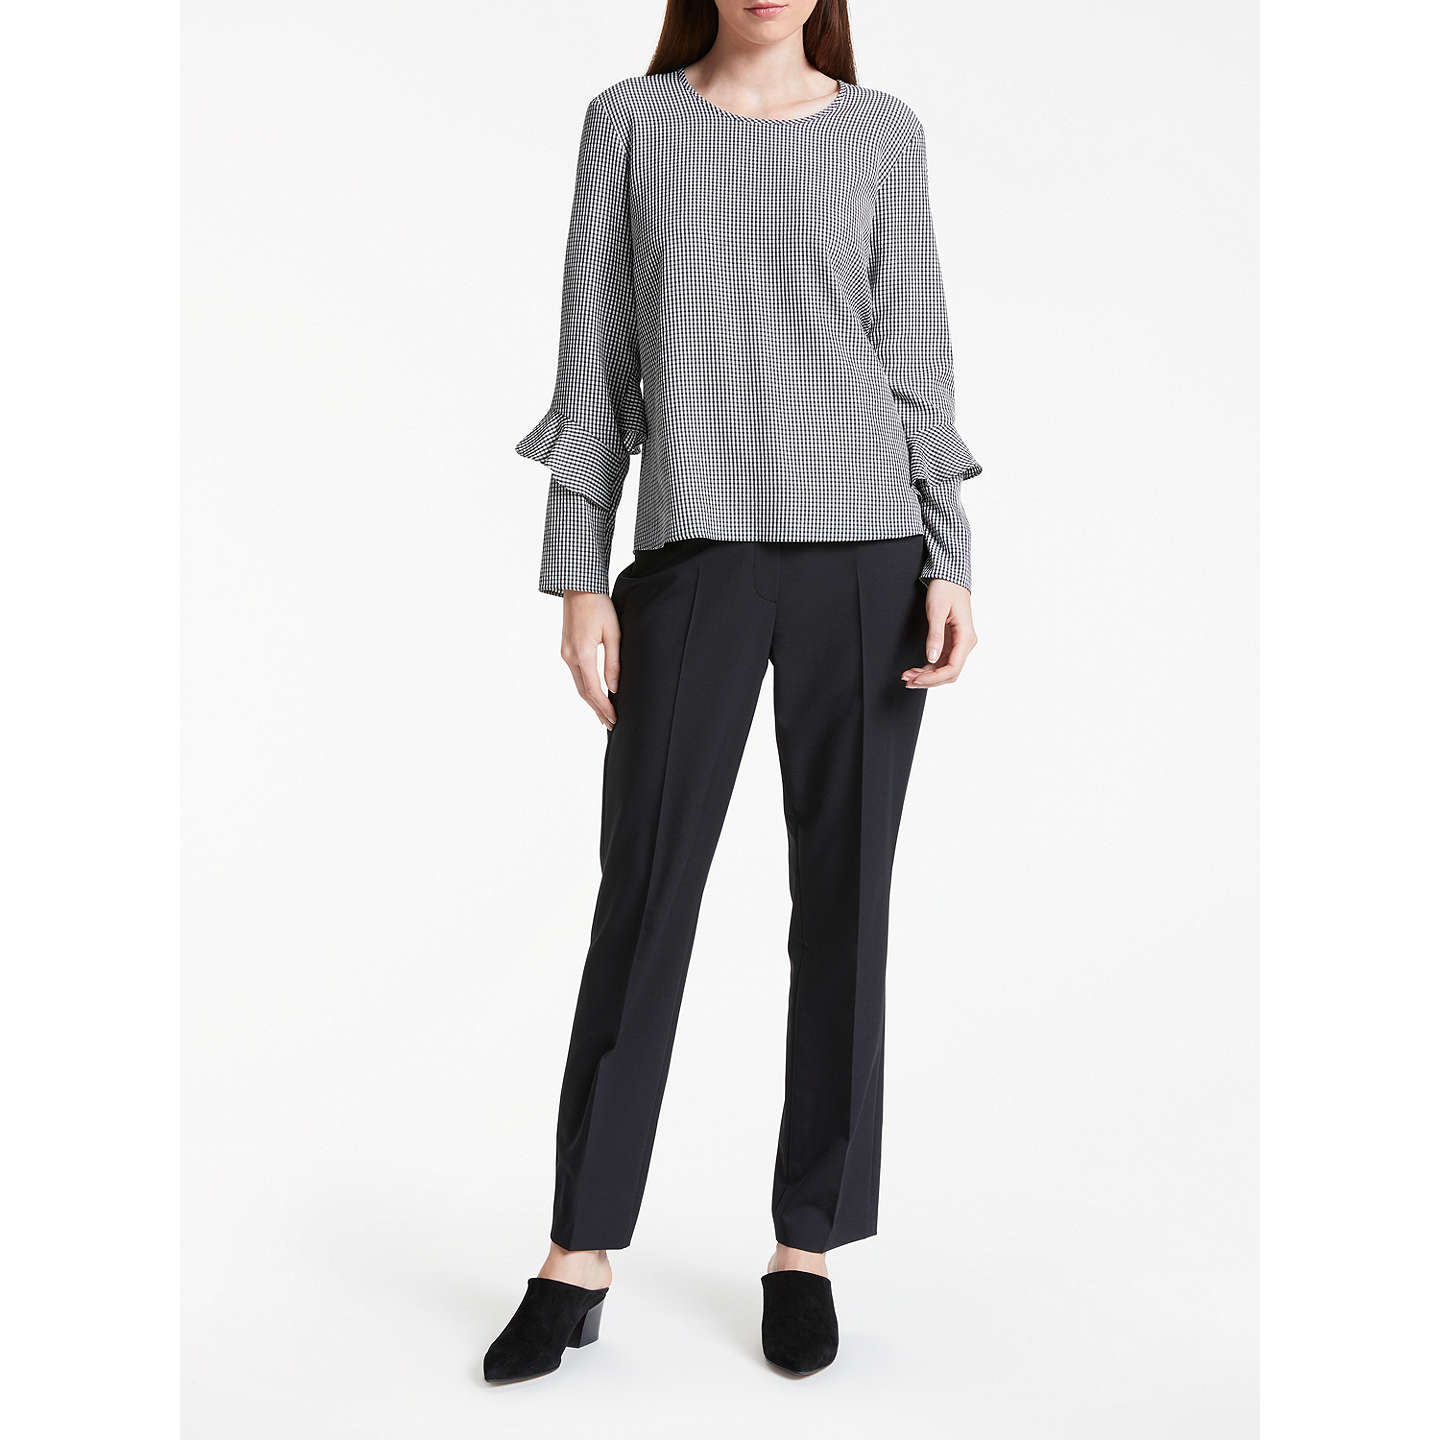 BuyGerry Weber Long Sleeve Gingham Top, Black/White, 10 Online at johnlewis.com